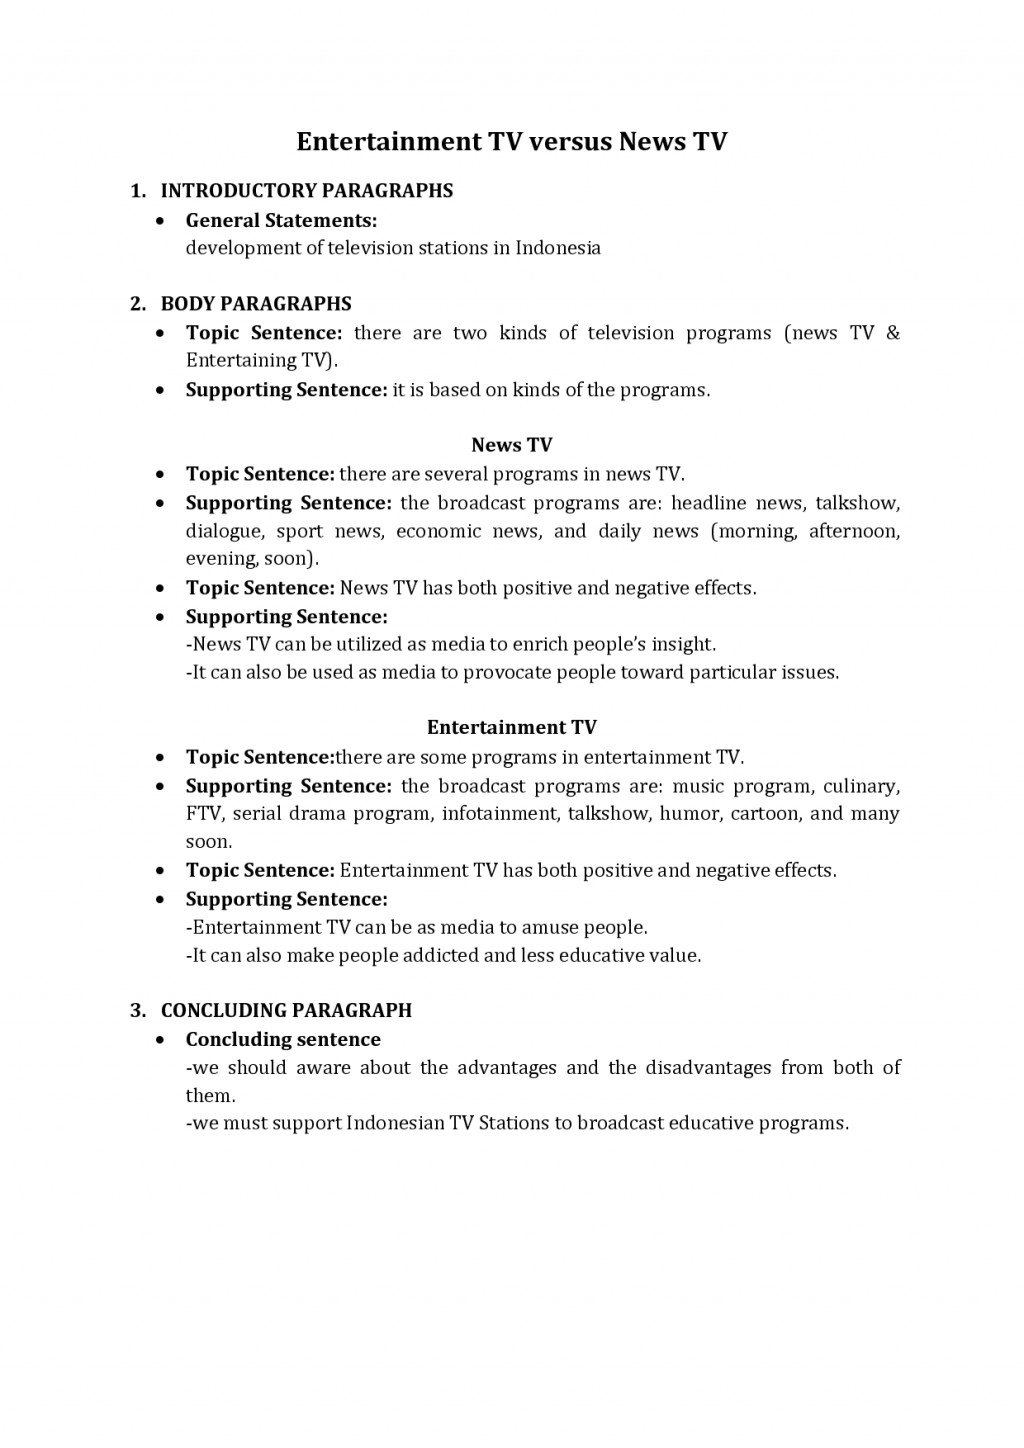 007 Fbunmxinib Essay Example College Application Singular Outline Pdf Layout Large